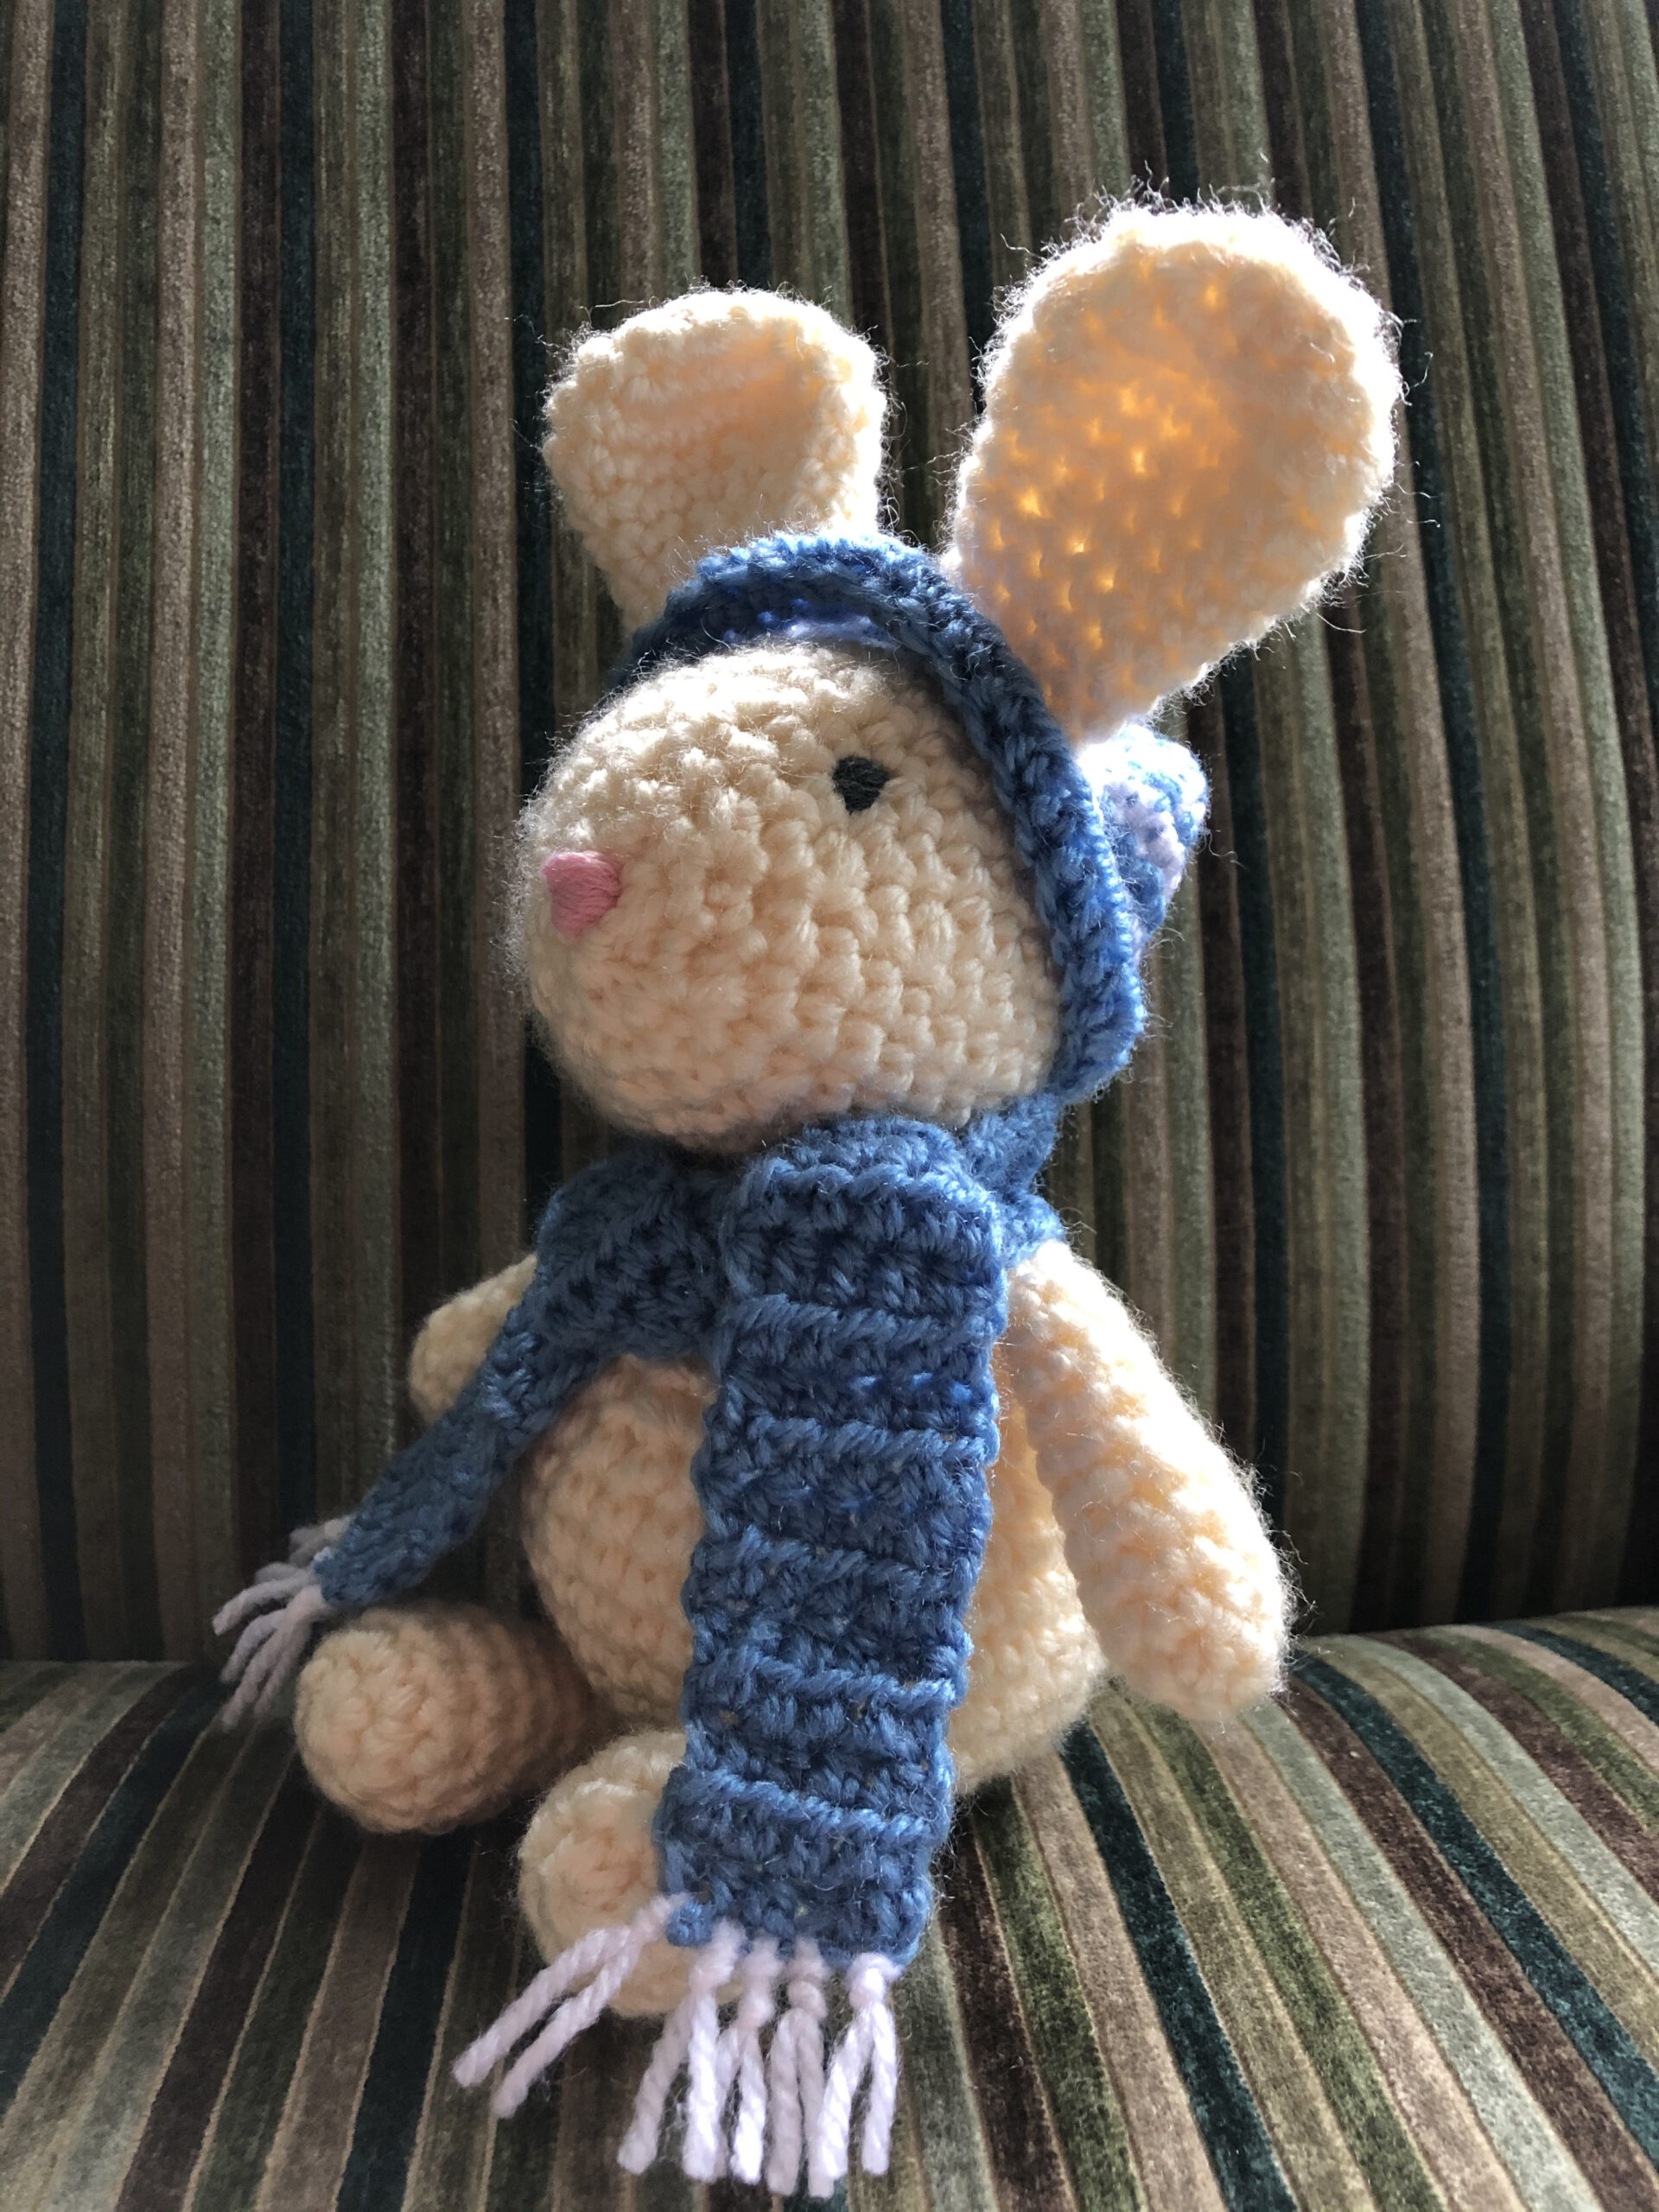 All dressed for winter bunny.